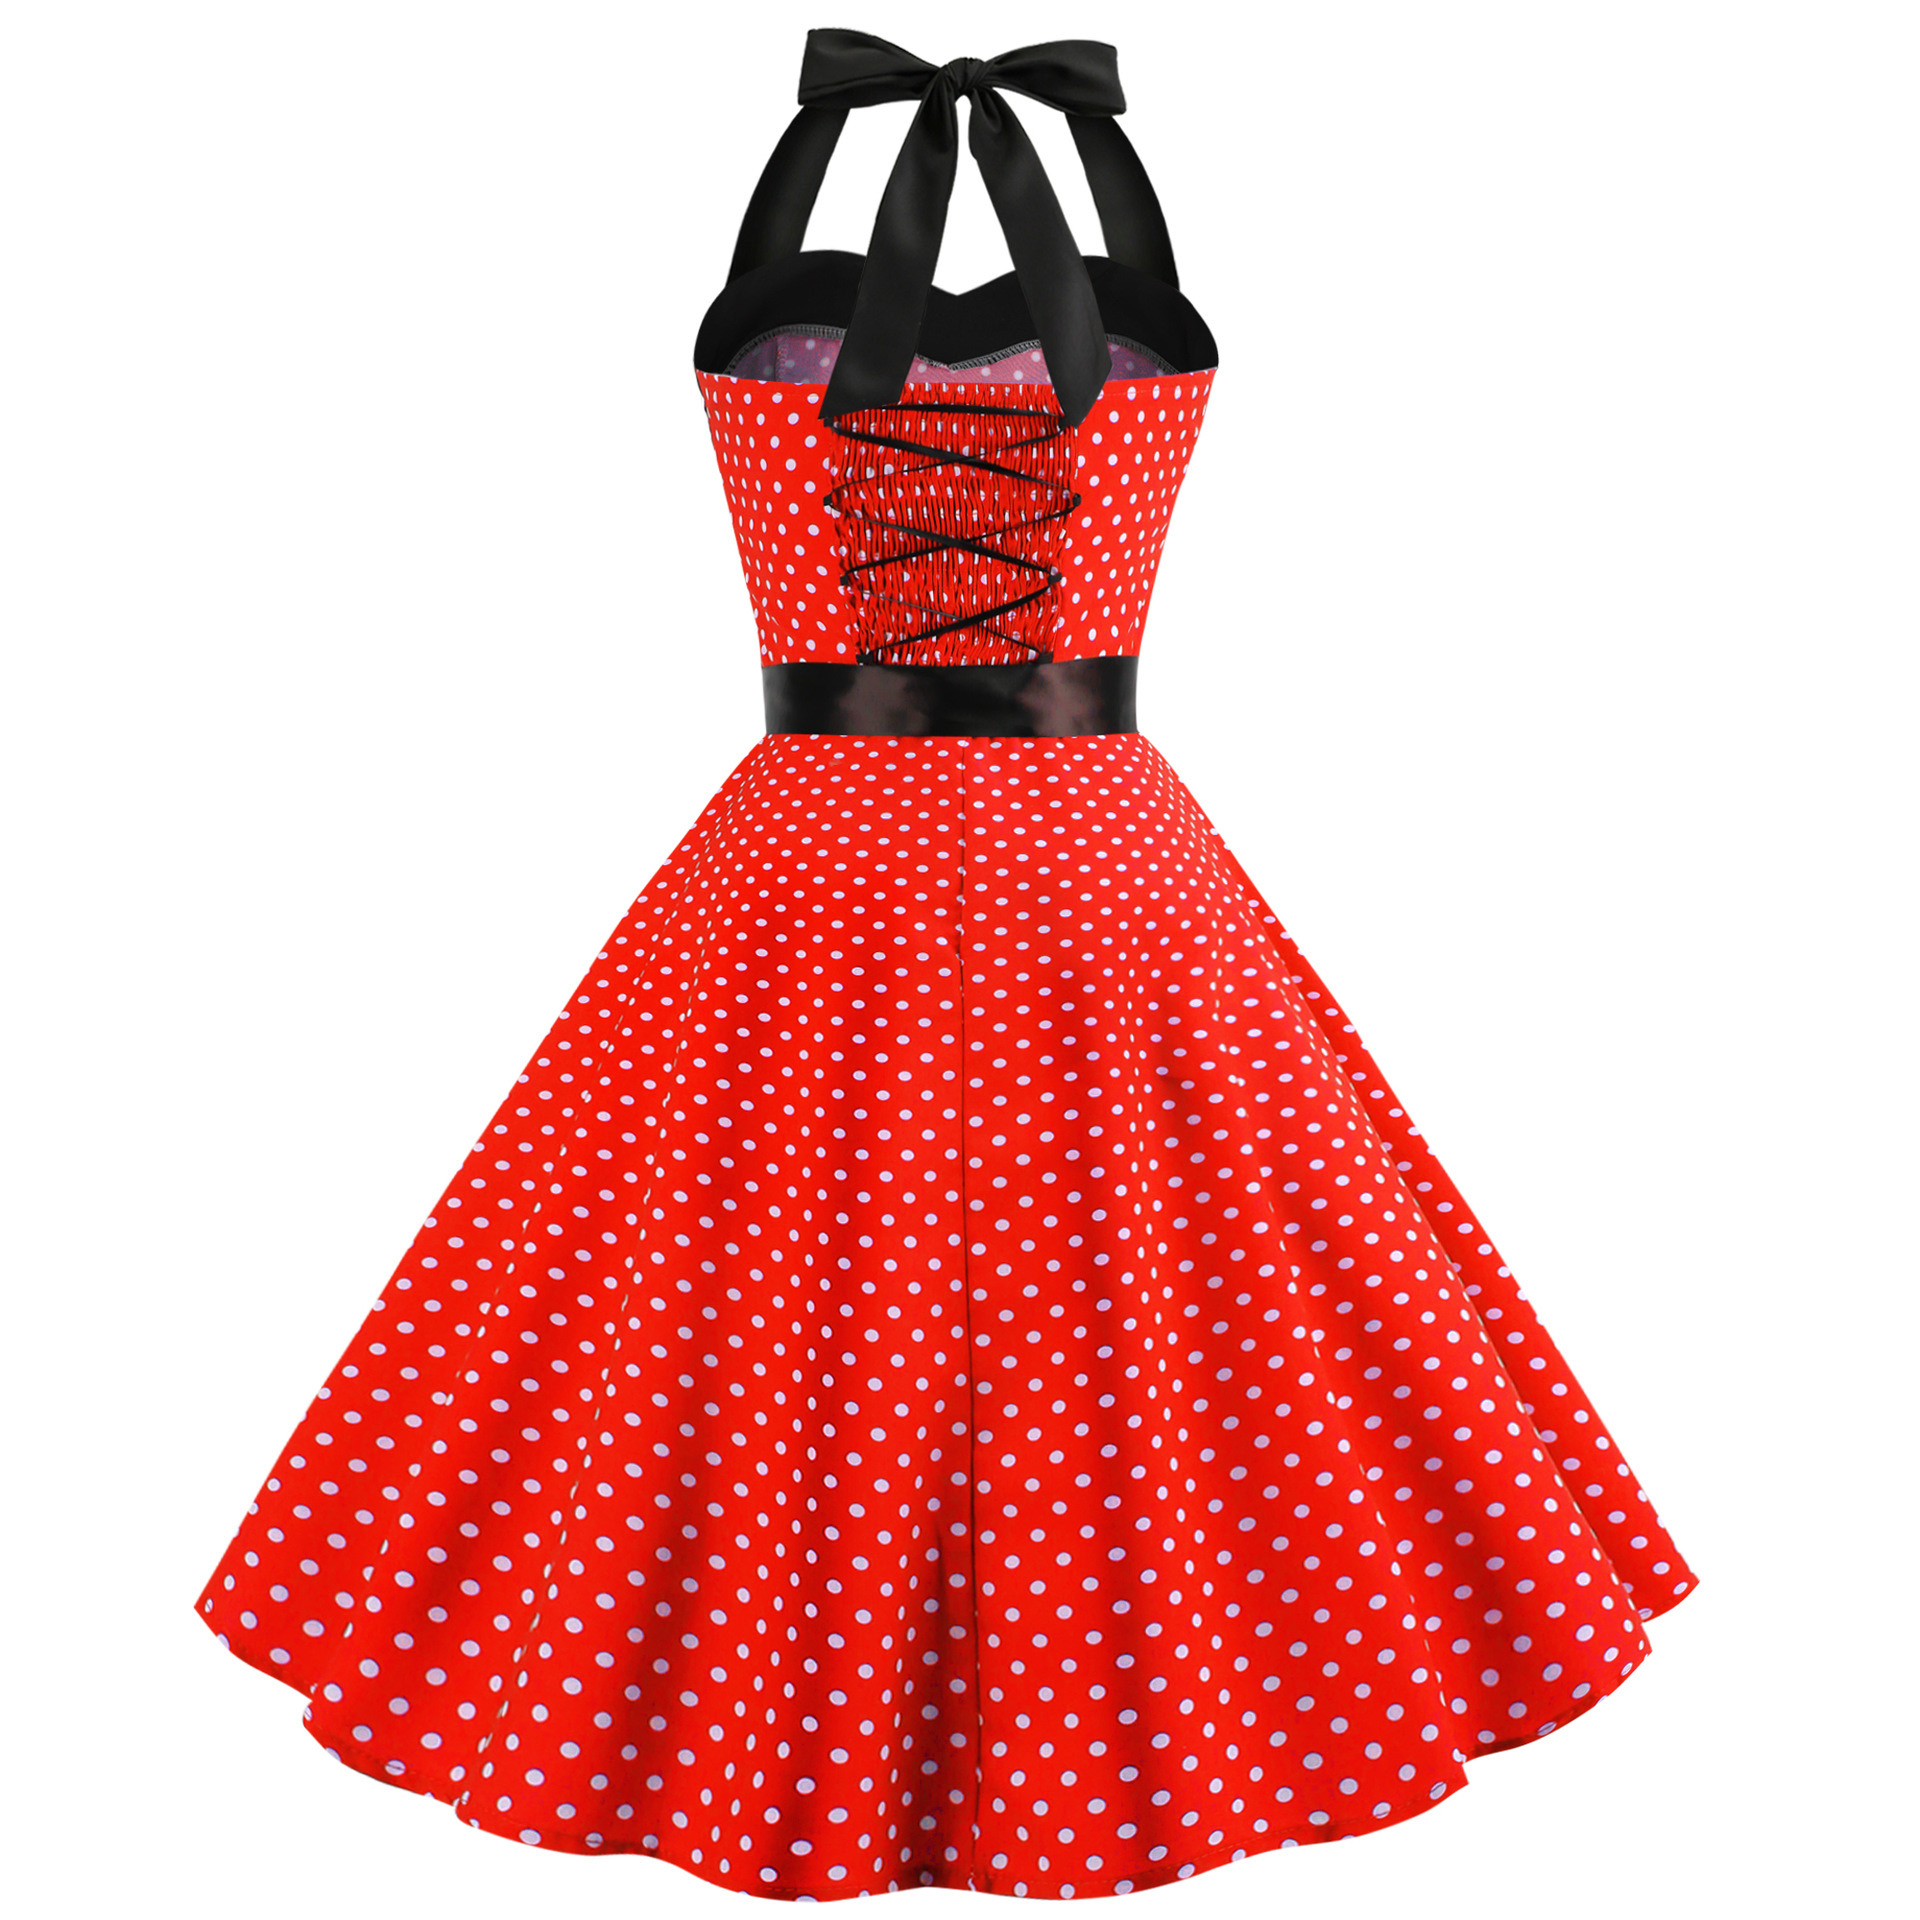 2019 Retro Polka Dot Hepburn Vintage Sexy Halter Party Dress 50s 60s Pin Up Rockabilly Dresses Robe Plus Size Elegant Midi Dress in Dresses from Women 39 s Clothing